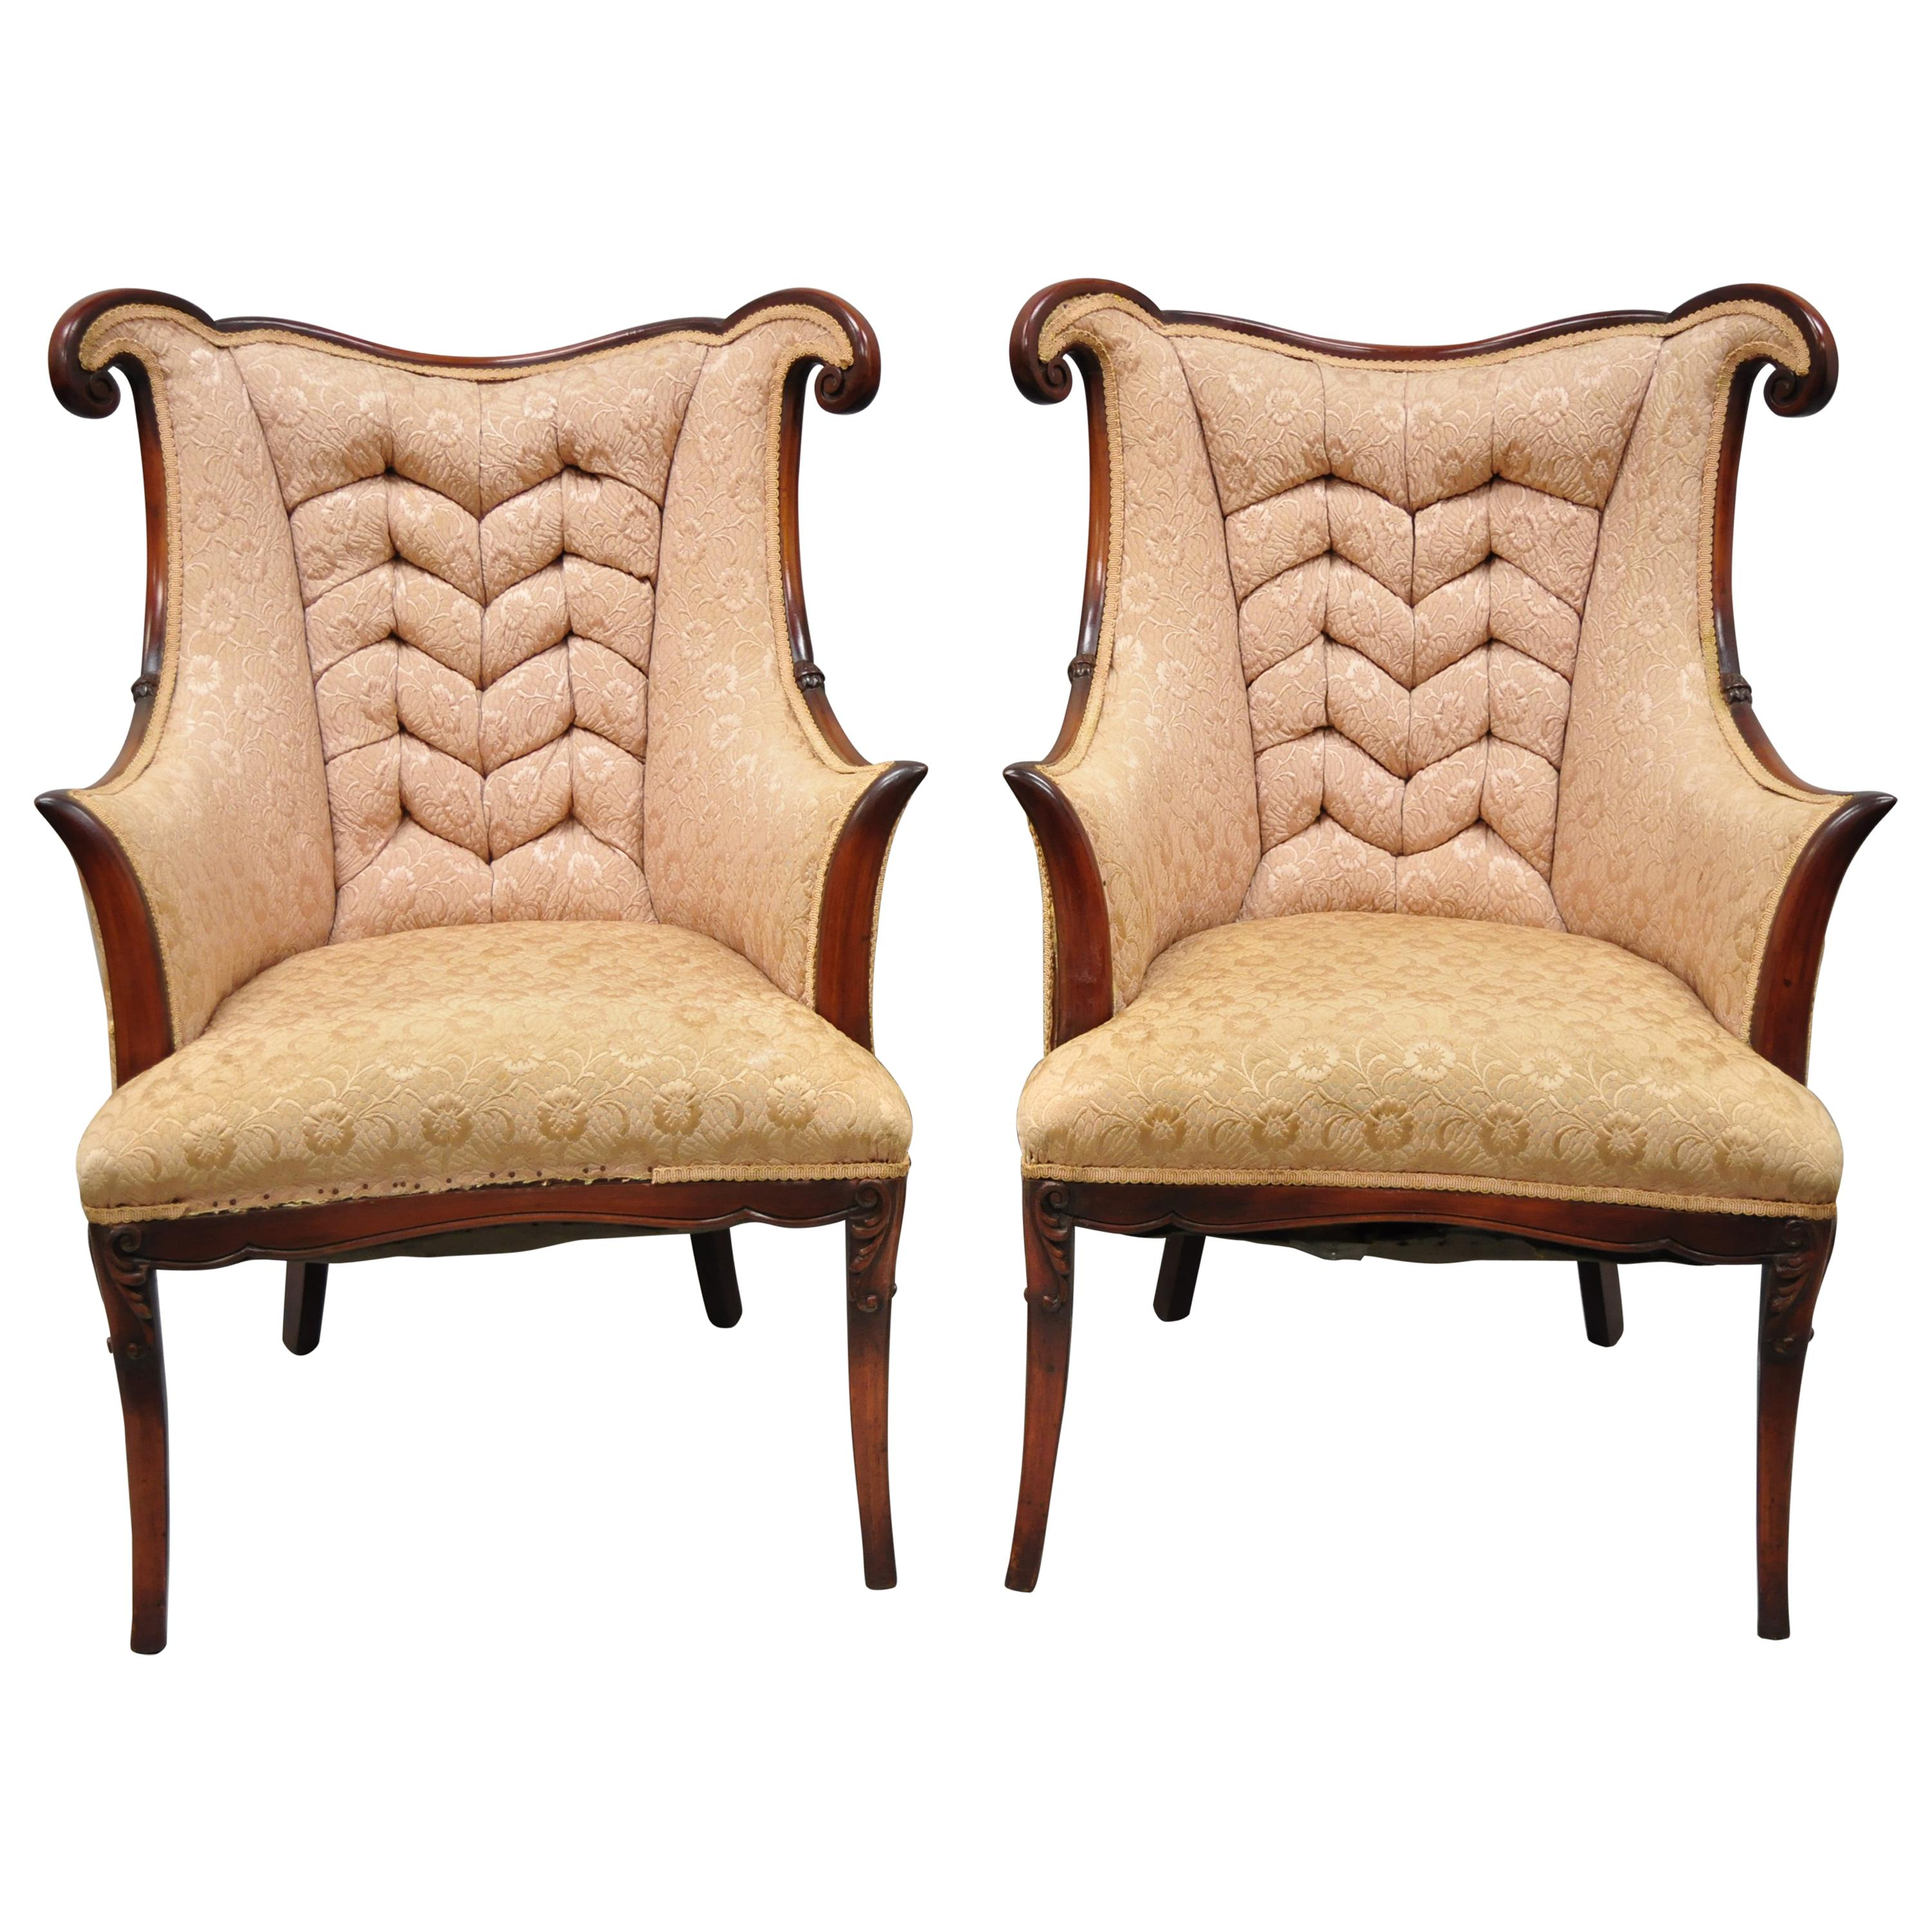 Pair of Hollywood Regency French Style Mahogany Armchairs after Dorothy Drapes